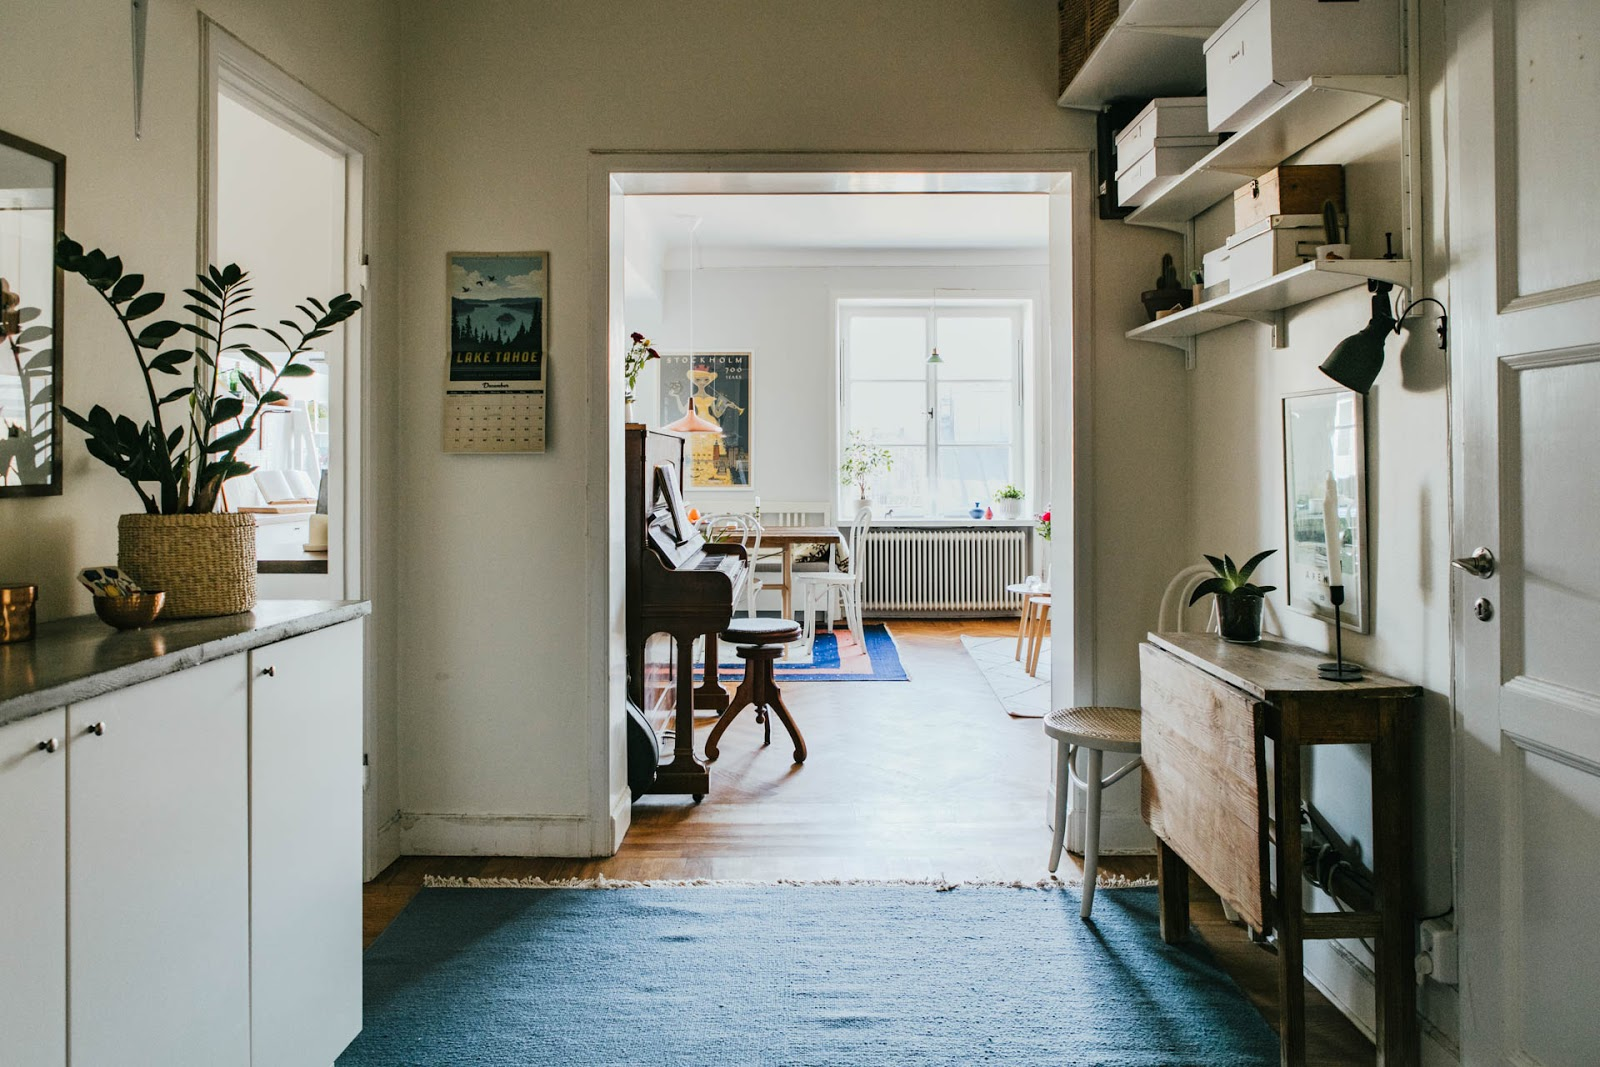 This Home And Although It Is Very Tidy Little Areas Such As The Skirting Board In The Hall Could Do With A Scrub Which Makes Me Feel Better About